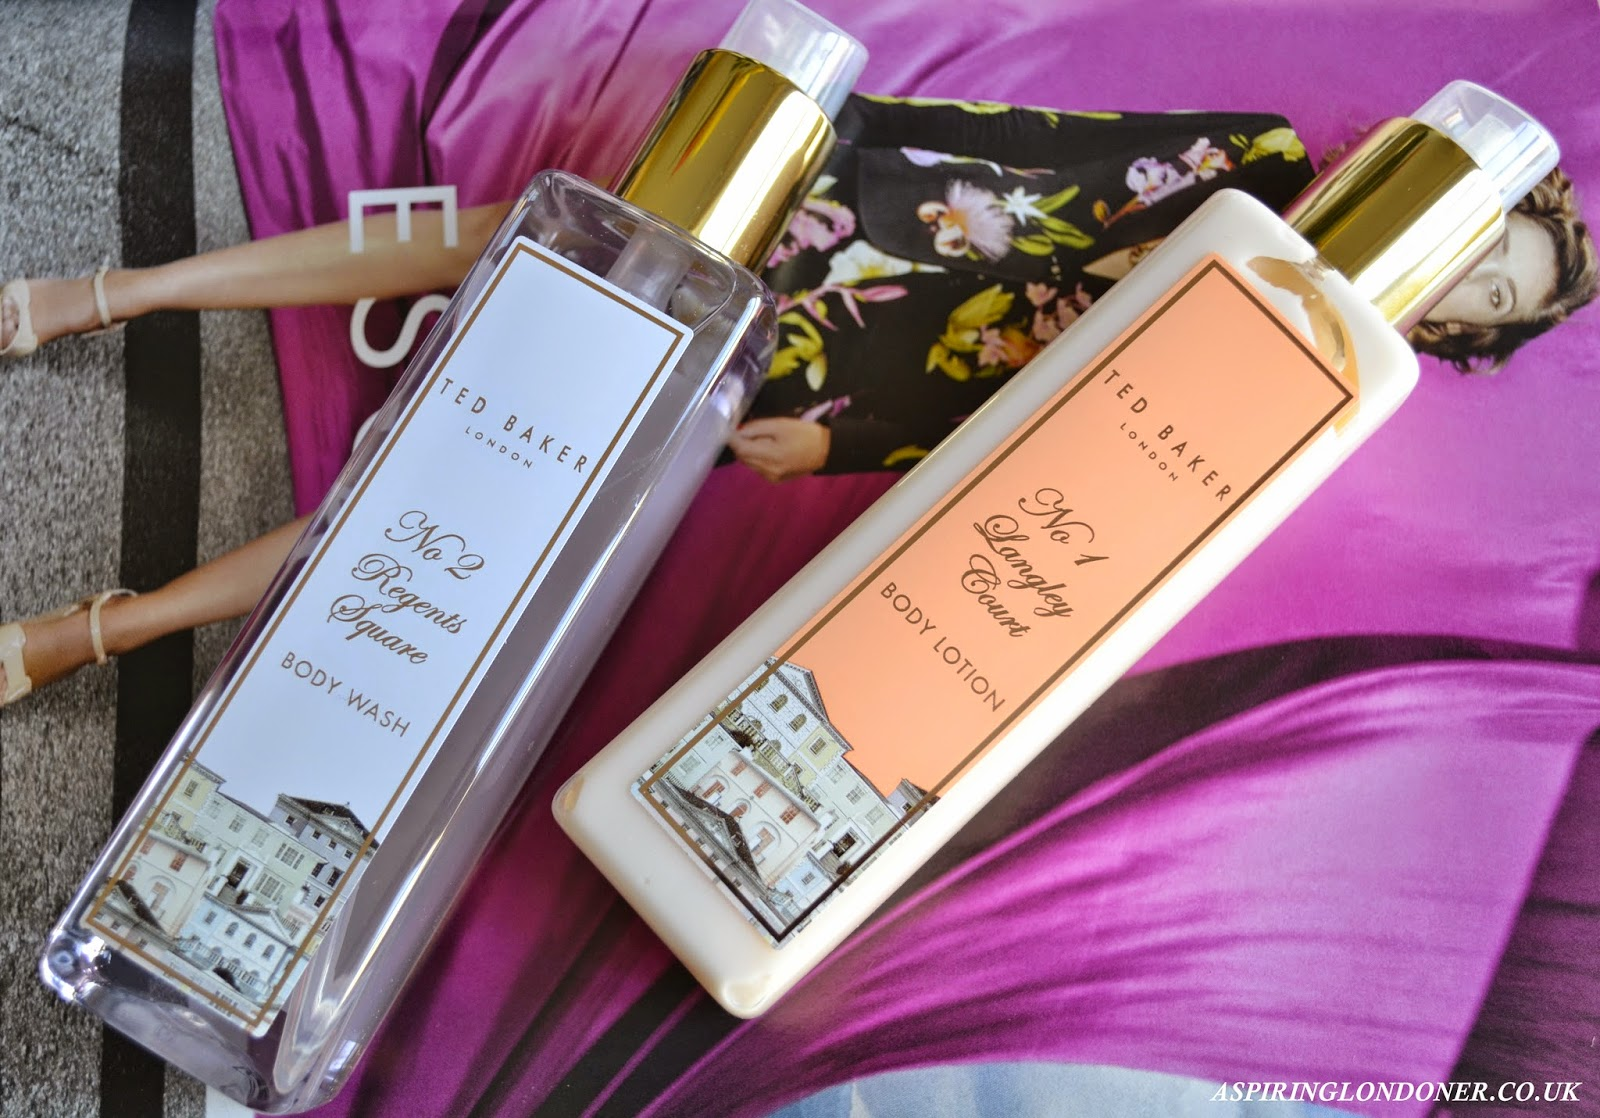 Ted Baker Regents Square Body Wash & Ted Baker Langley Court Body Lotion Review - Aspiring Londoner